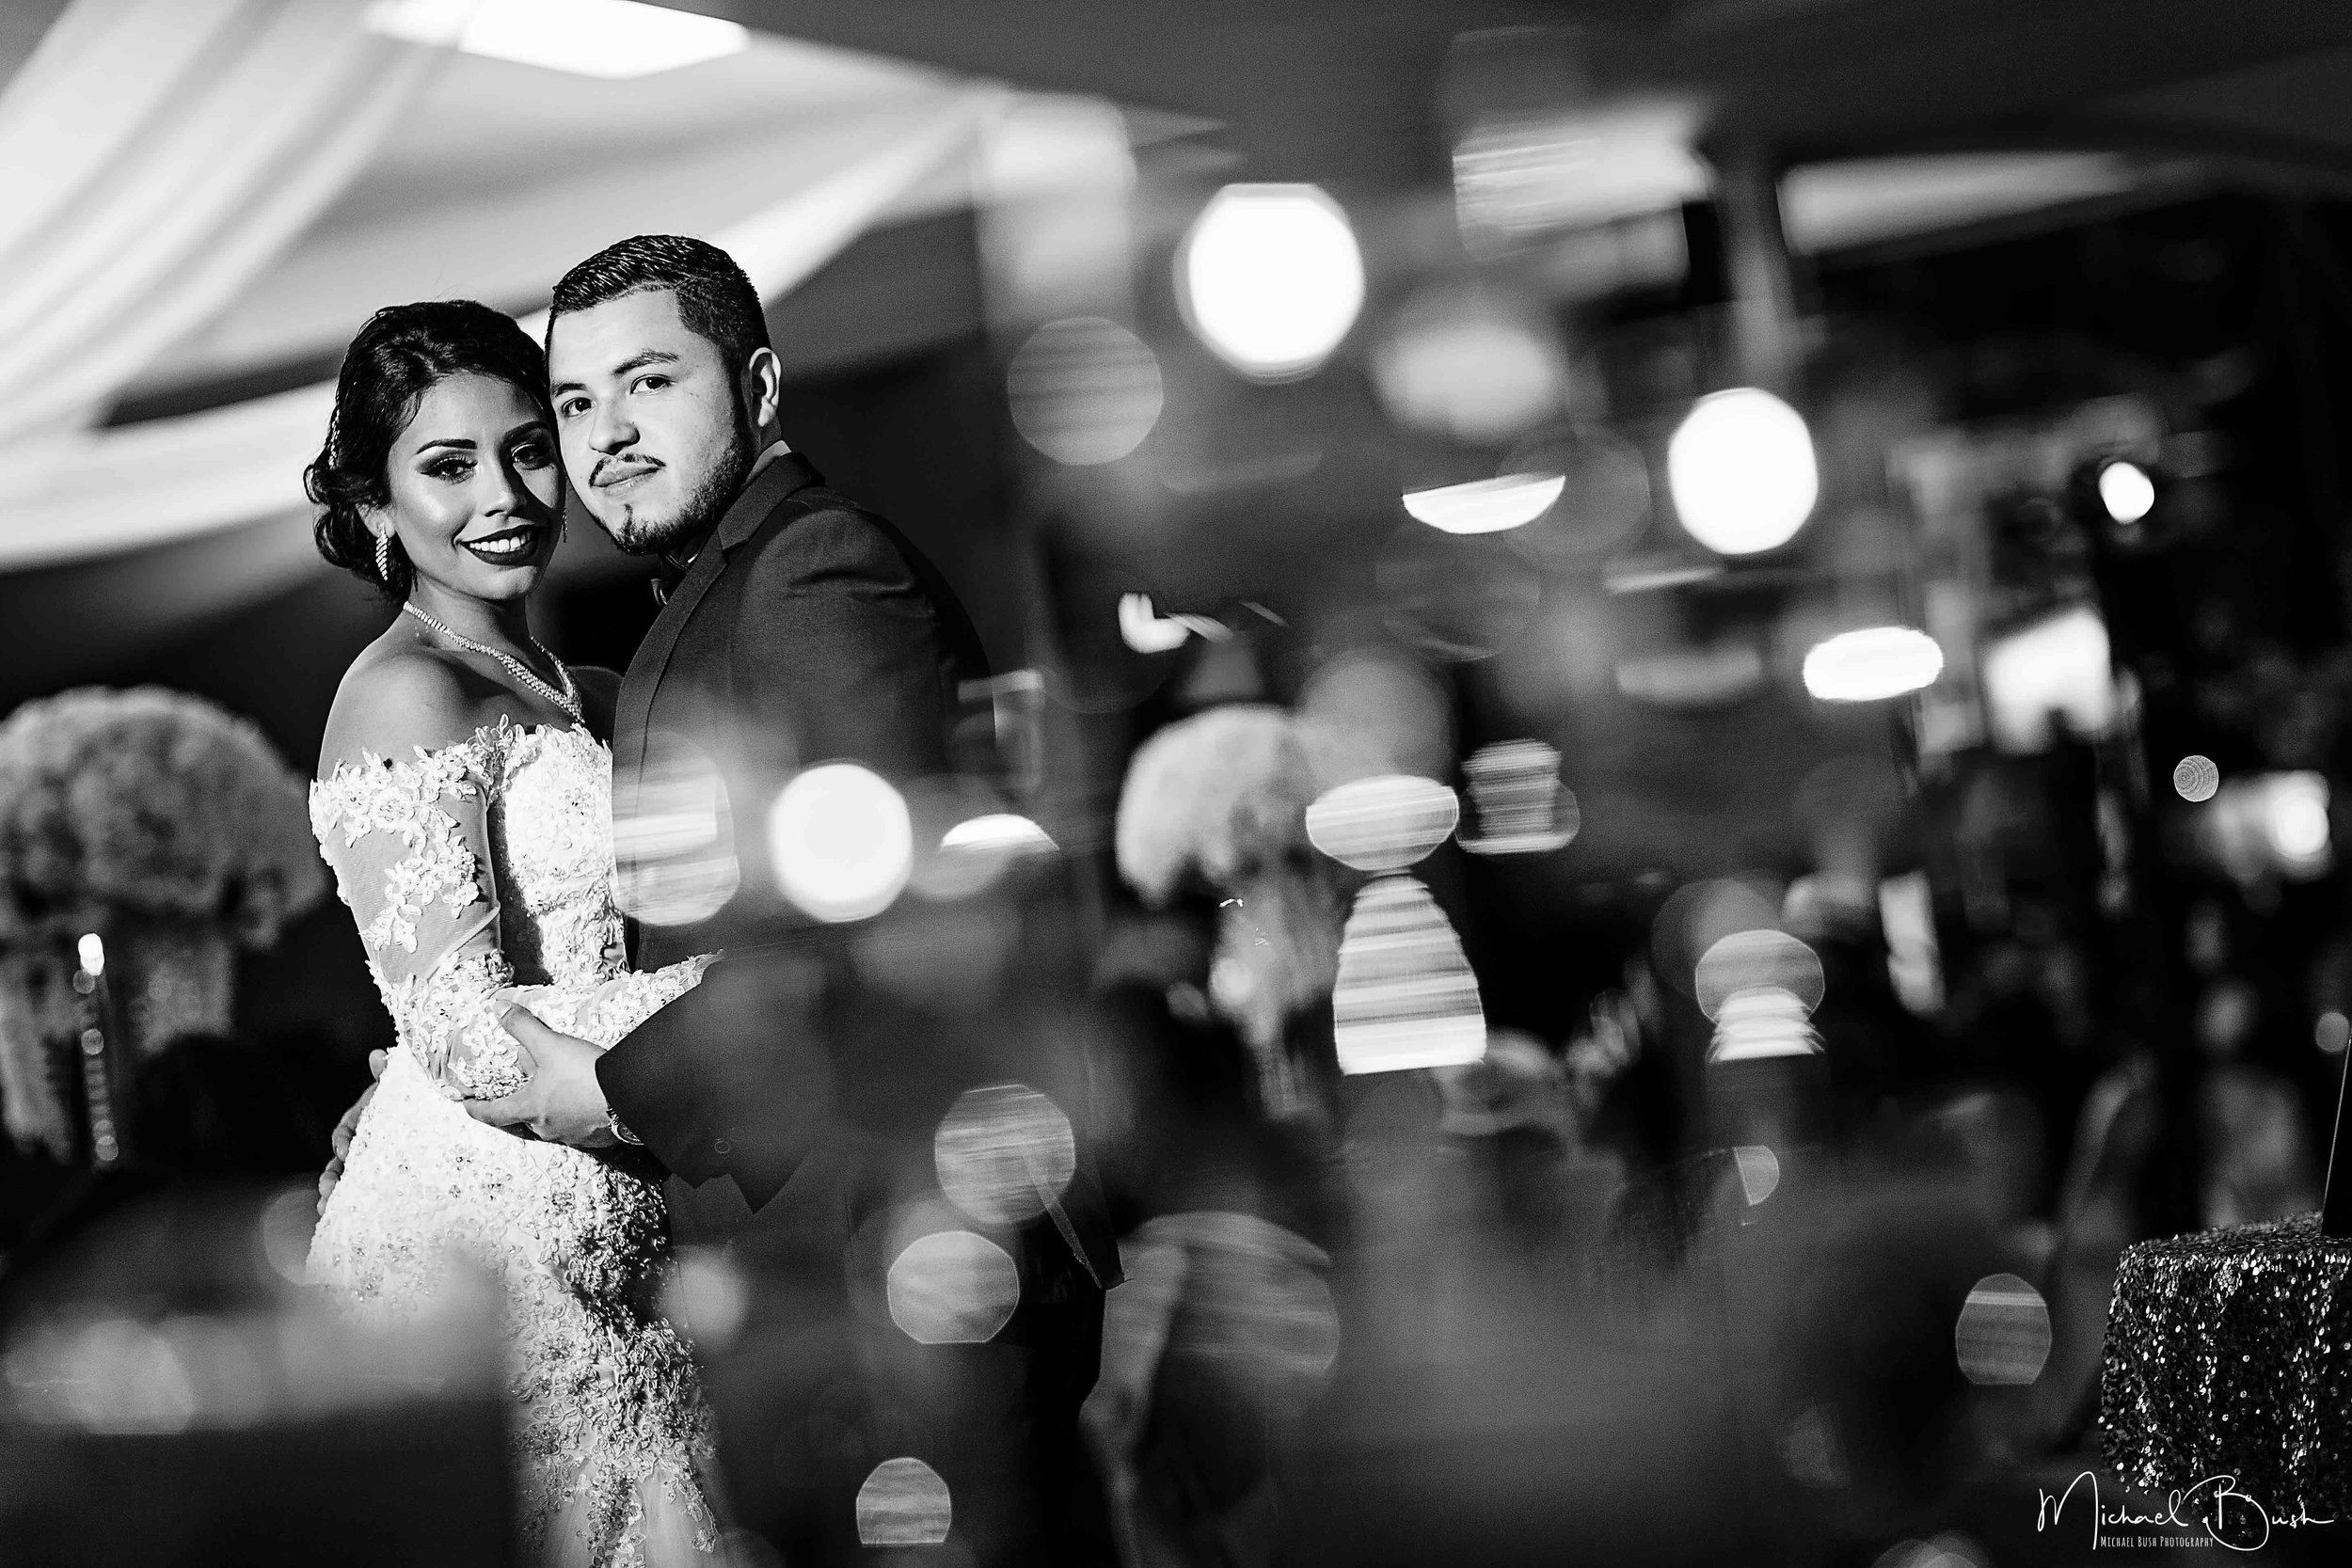 Wedding-Reception-Detials-Fort-Worth-Venue-b&w-kiss-wedding-kiss-ido.jpg